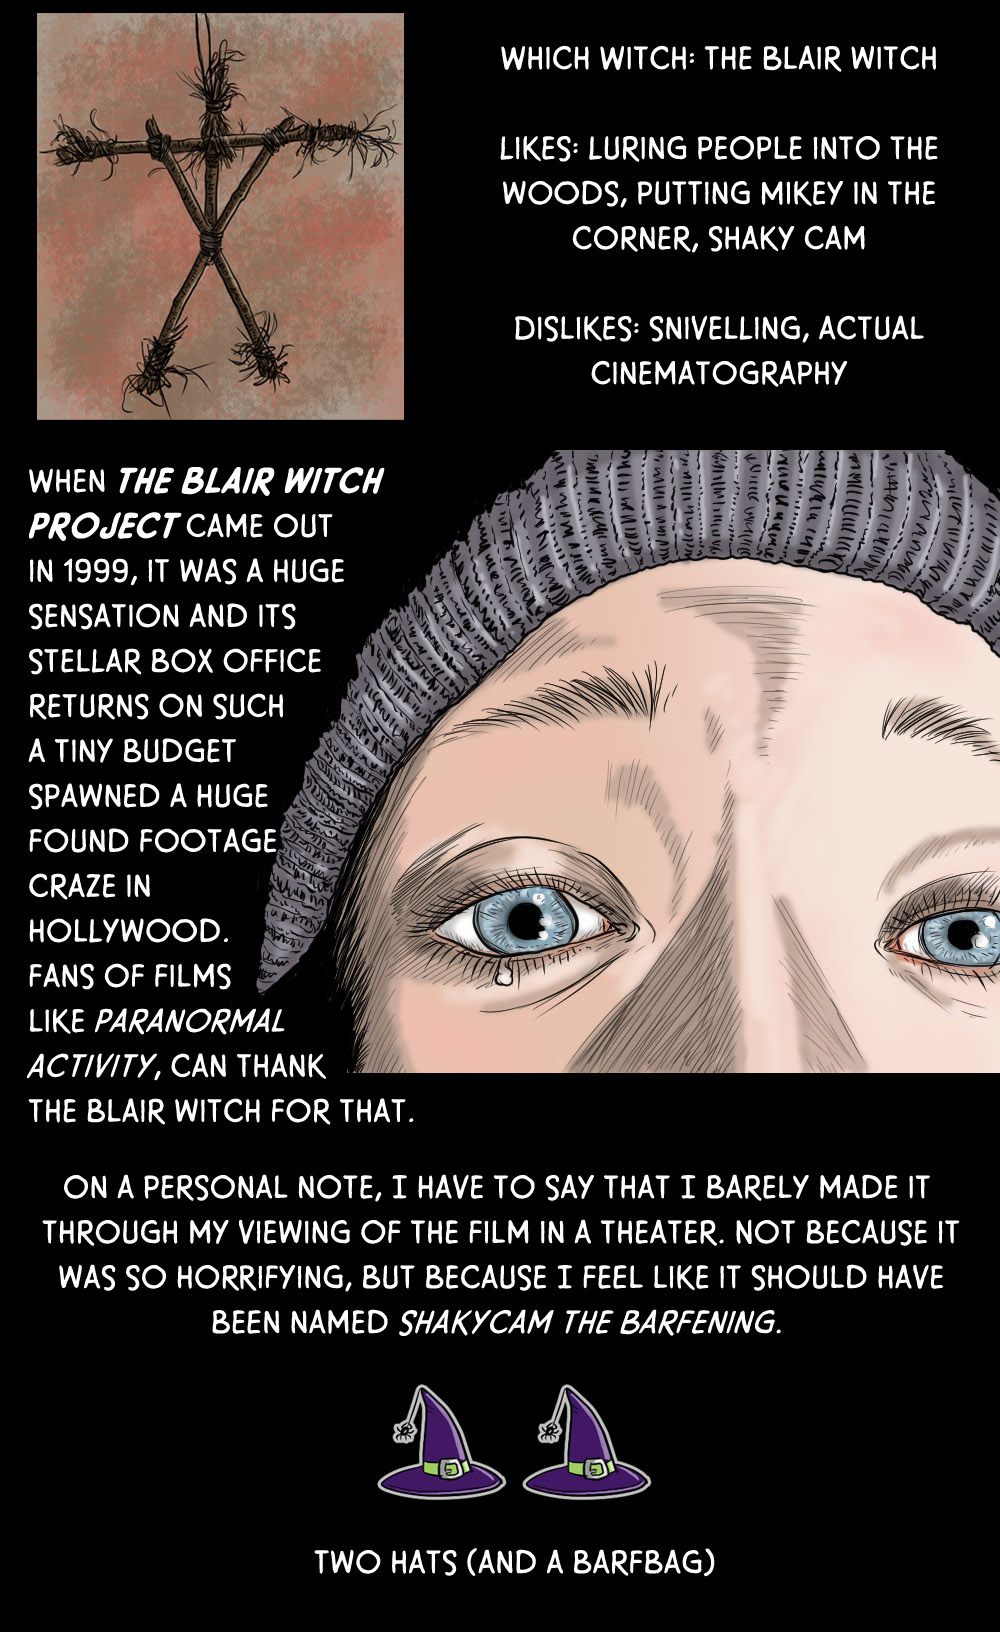 October 5: The Blair Witch Project (bring Dramamine)